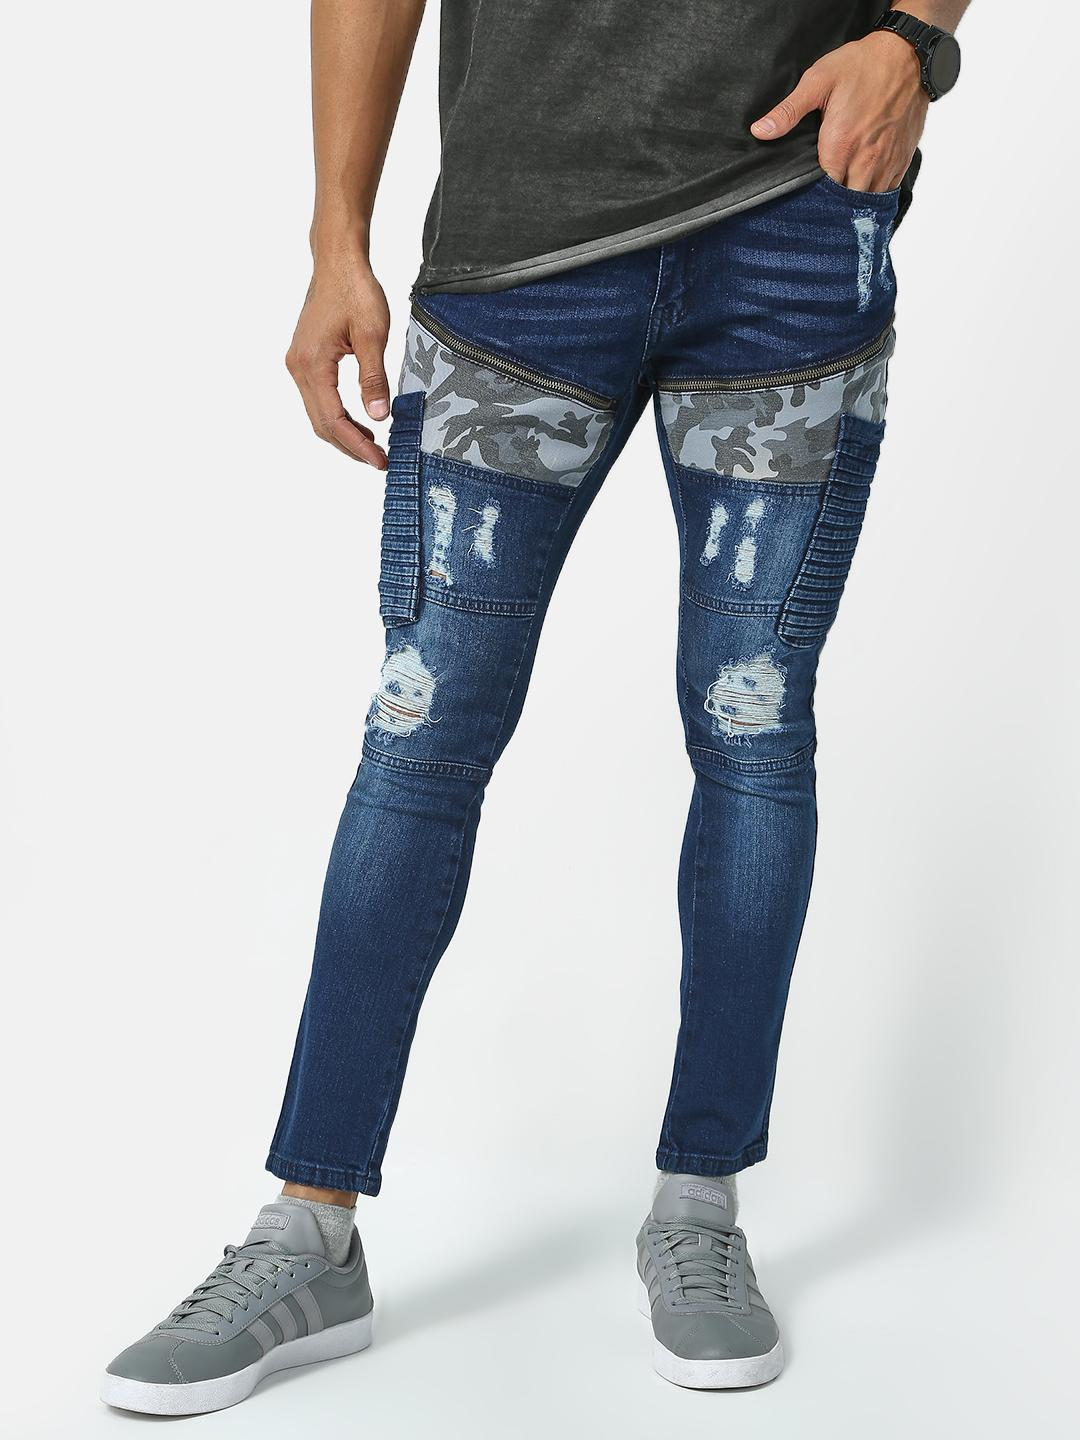 IMPACKT Navy Camo Patch Distressed Jeans 1